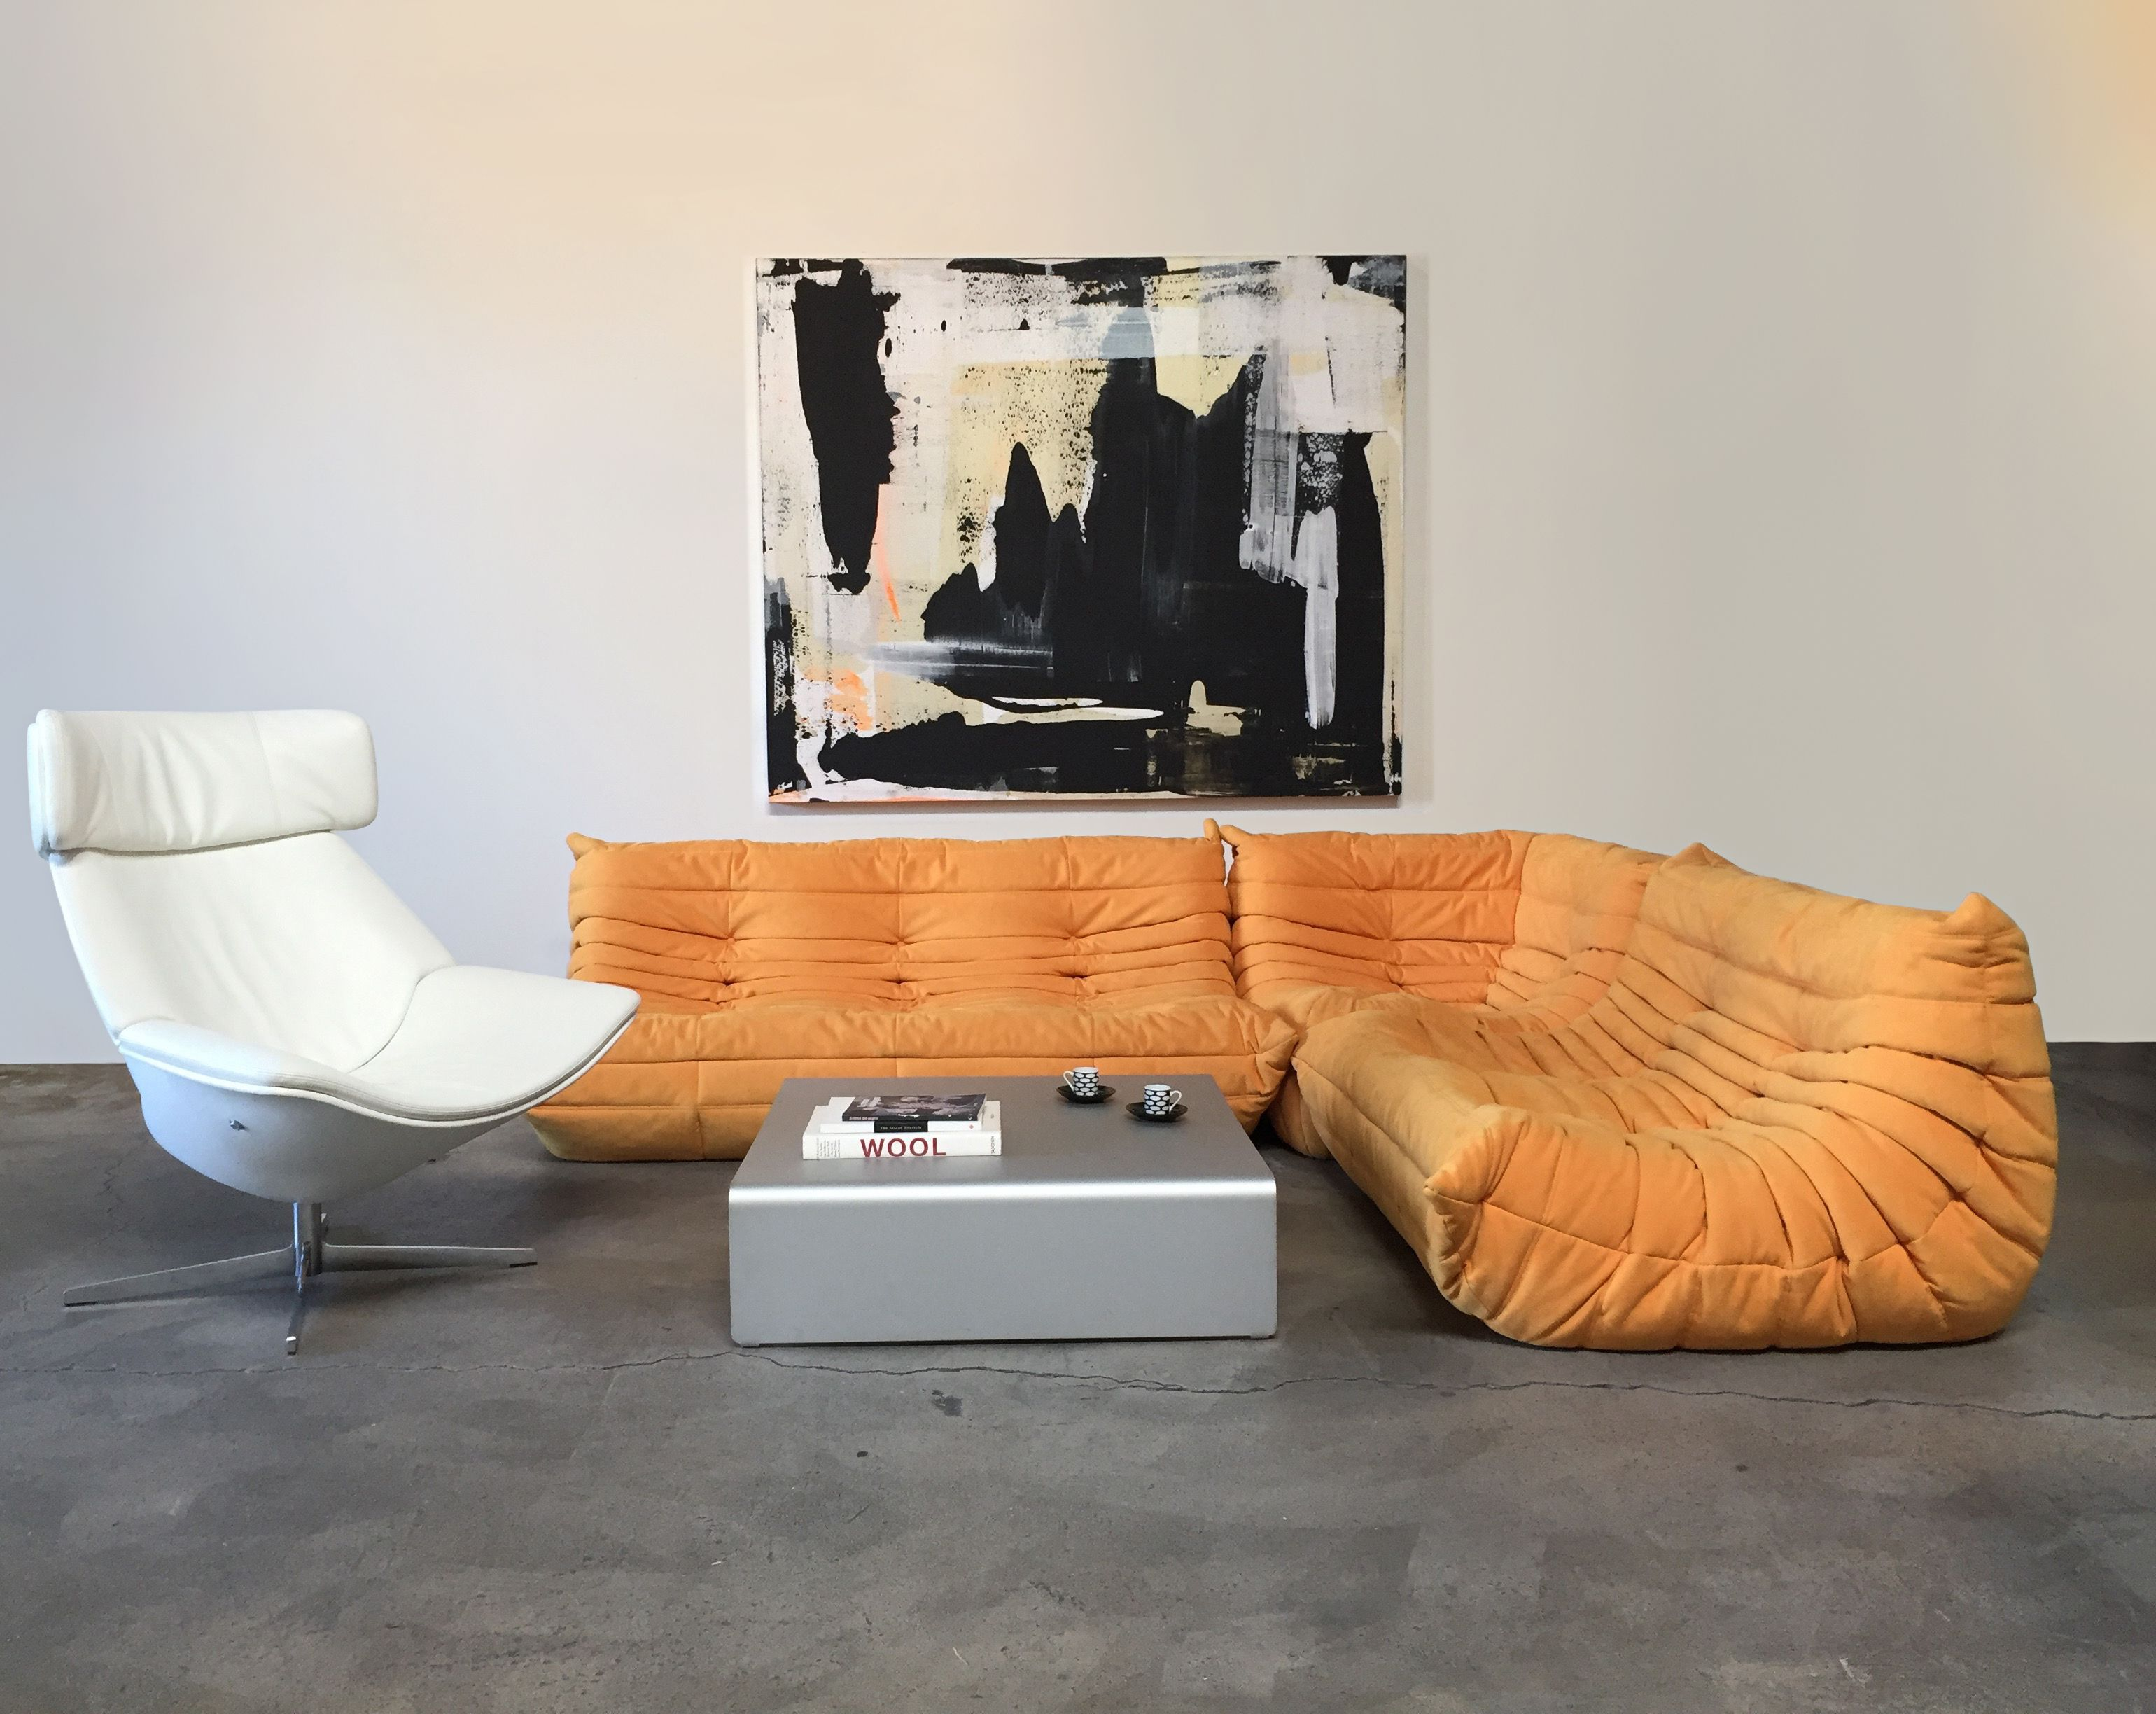 Shop Your Favorite Modern Luxury Brands At Warehouse Sale Prices This Ligne Roset Togo Sectional And Walter Knoll Egon Chair Are Some Of The Many Excitin Maison